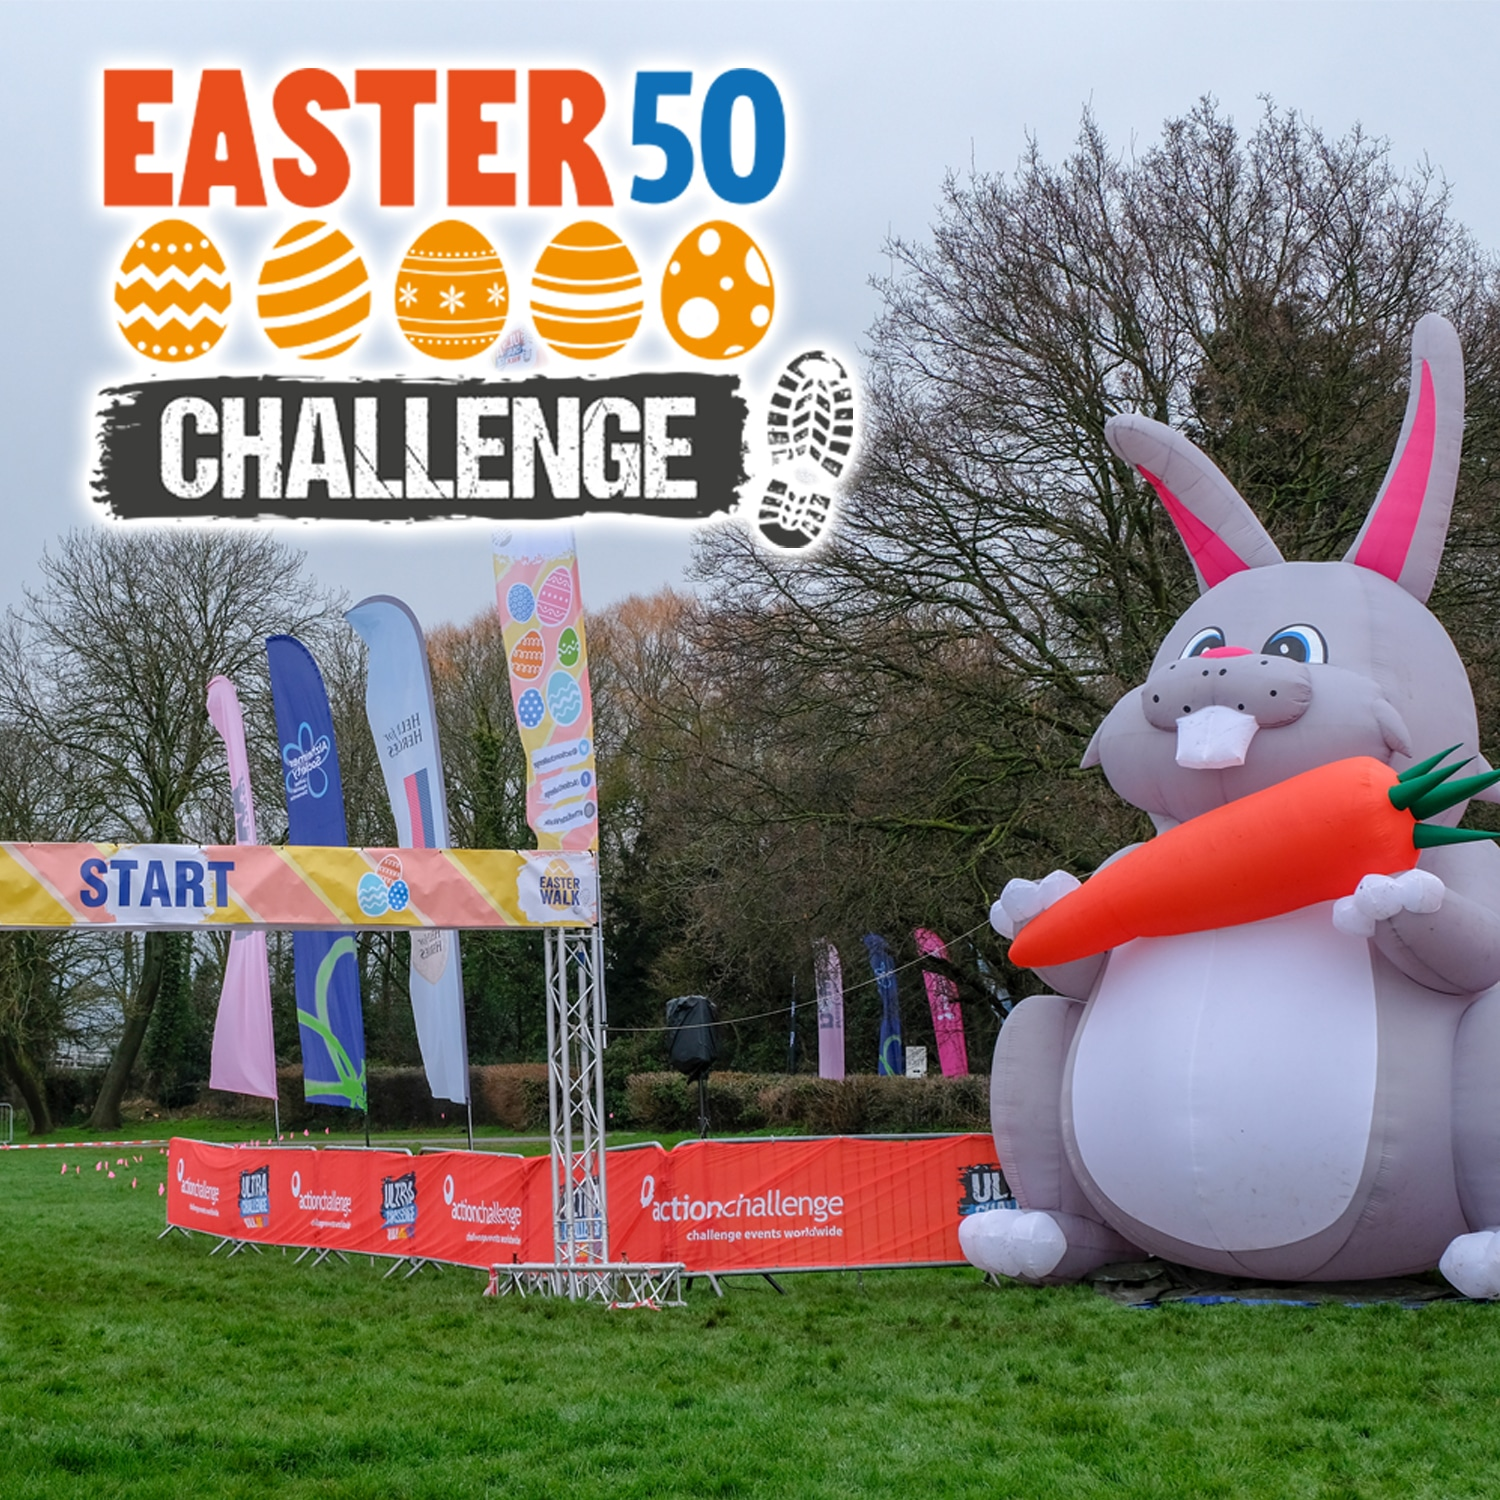 Images shows the Easter 50 Challenge logo with a photo of the start line with a giant inflatable rabbit